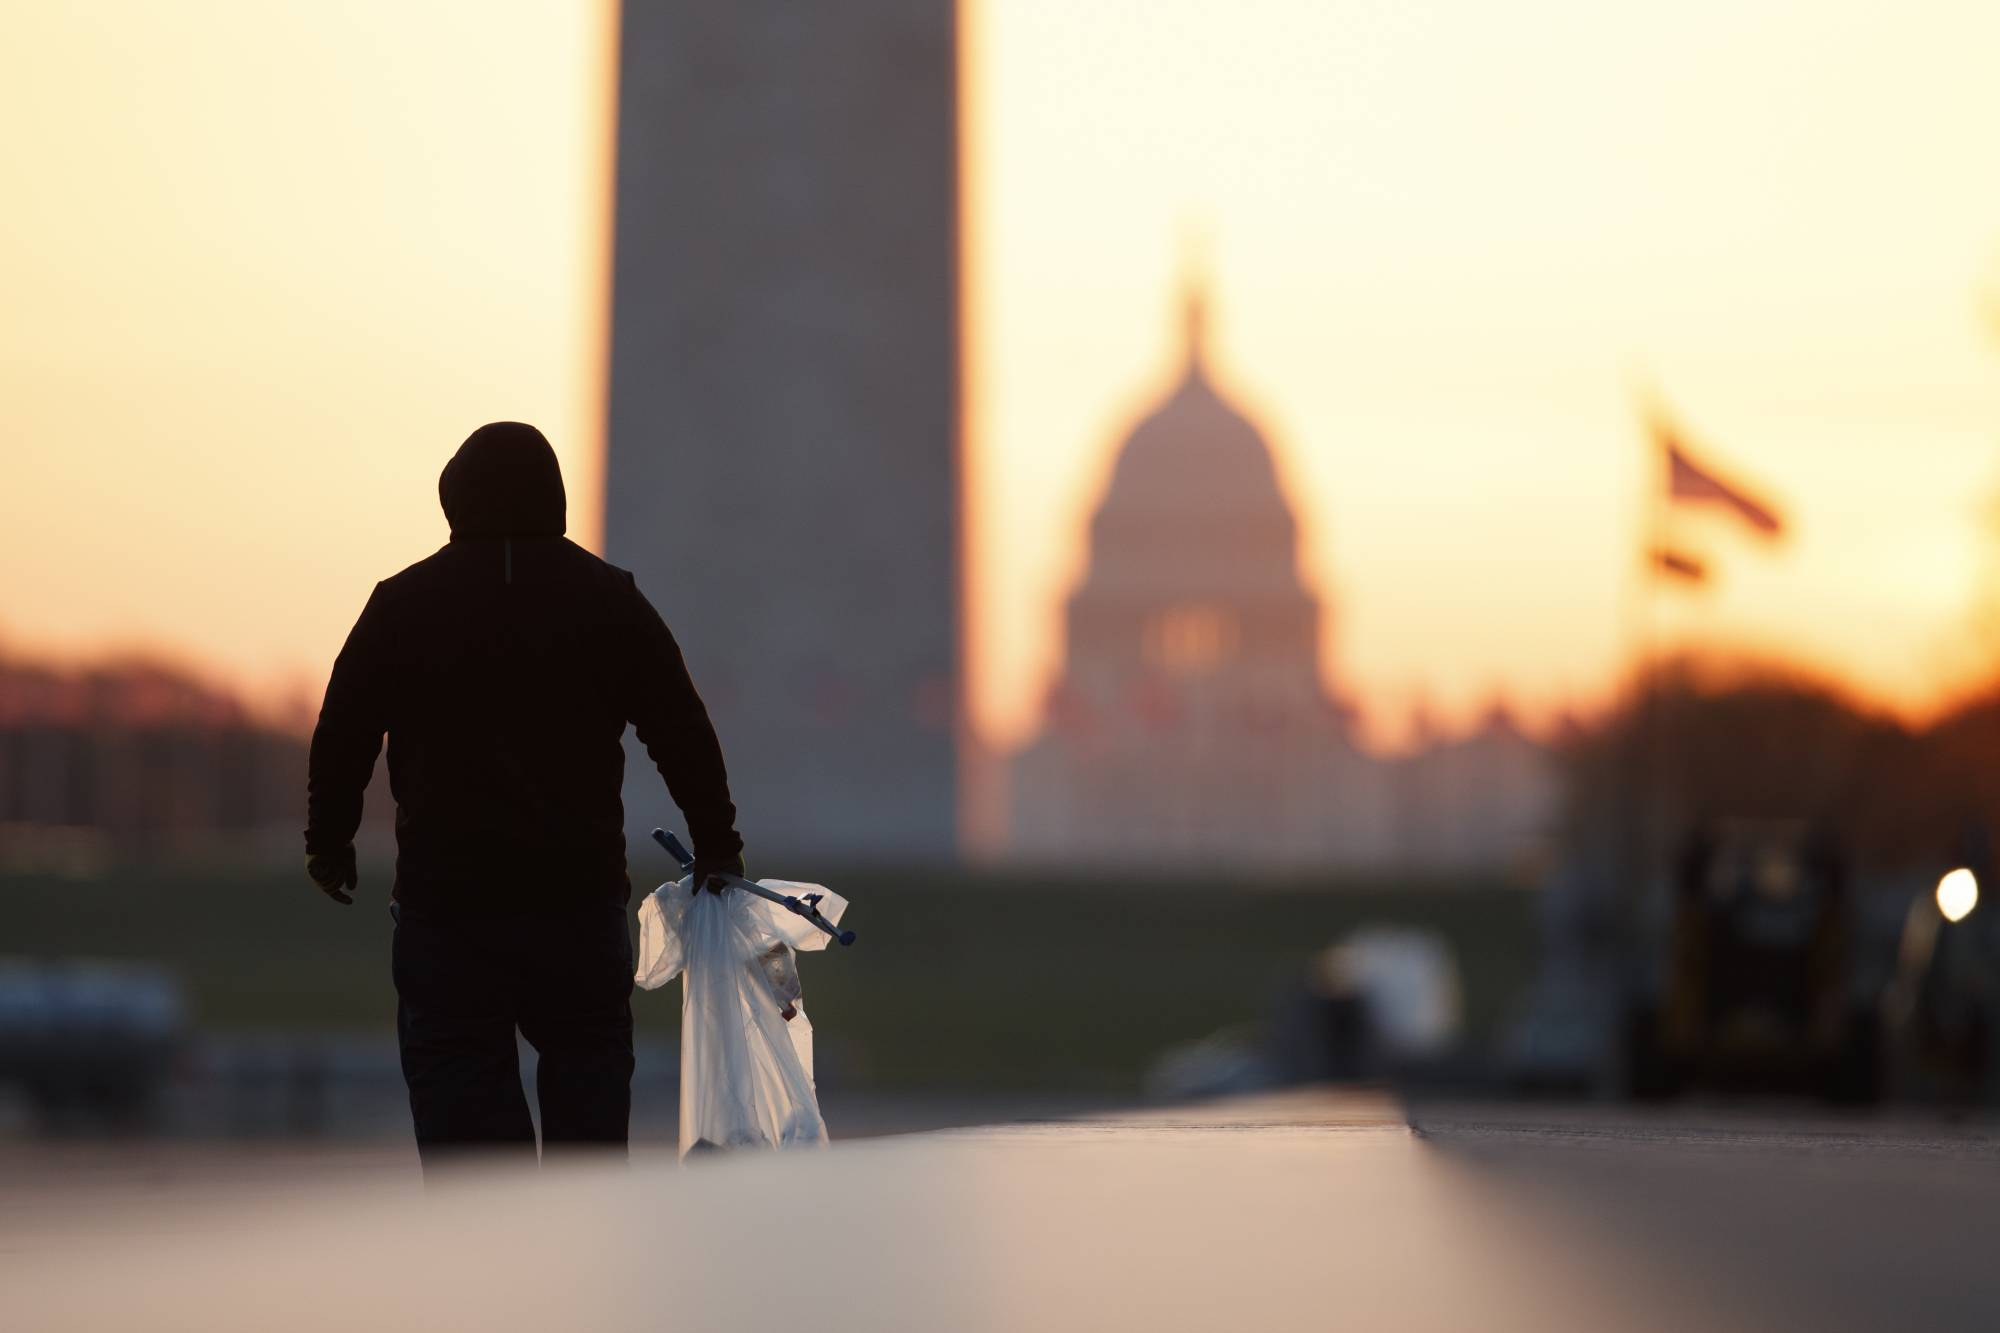 FILE - In this March 18, 2020, file photo a National Park Service worker picks up trash along the drained Lincoln Memorial Reflecting Pool as the Washington Monument and the U.S. Capitol are seen in the distance in Washington, at sunrise. Nearly 3,000 federal workers have filed compensation claims for having contracted COVID-19 on the job, a number that is expected to double by early next month, according to a Department of Labor review. (AP Photo/Carolyn Kaster, File)